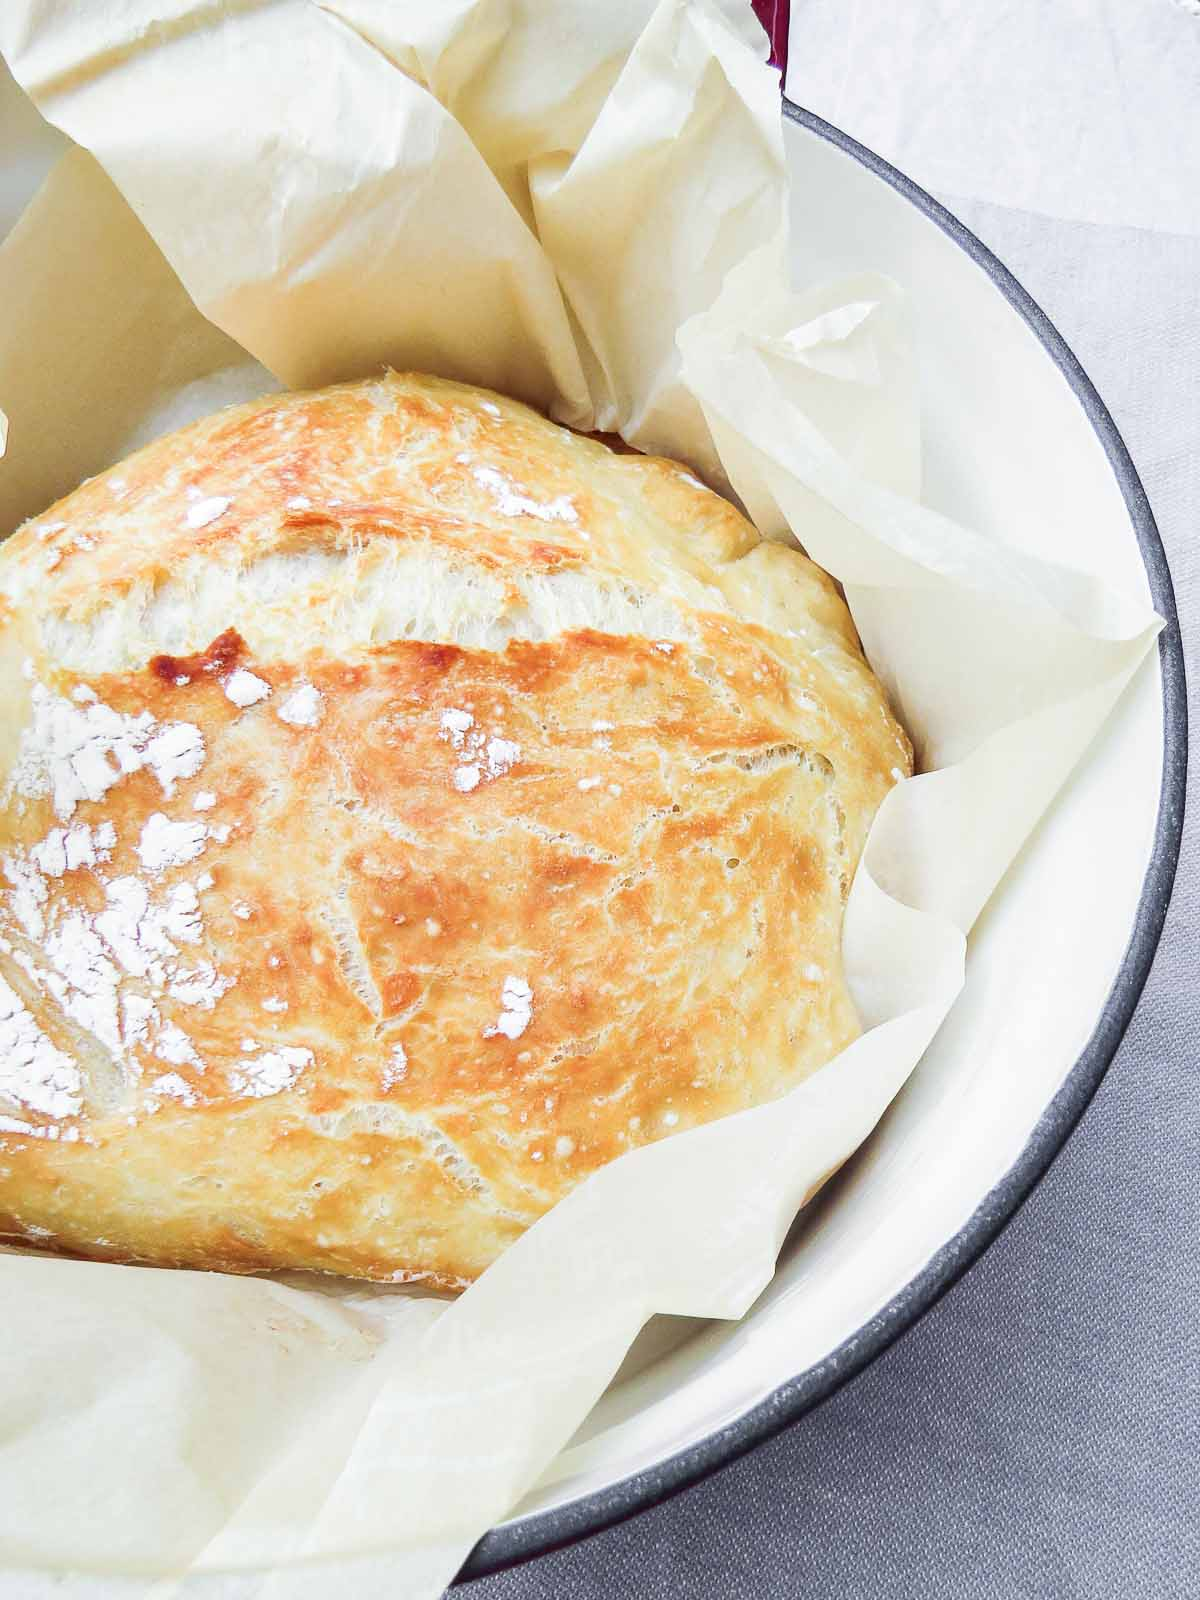 Not So Secret No Knead Bread - Flour, salt, yeast, and water. Mix it. Let it sit overnight. DO NOT knead it. Bake it. That's it!!! This not so secret no knead bread recipe has been floating about for YEARS! But if you haven't seen it yet or tried it, trust me it just became that thing you never knew you needed.